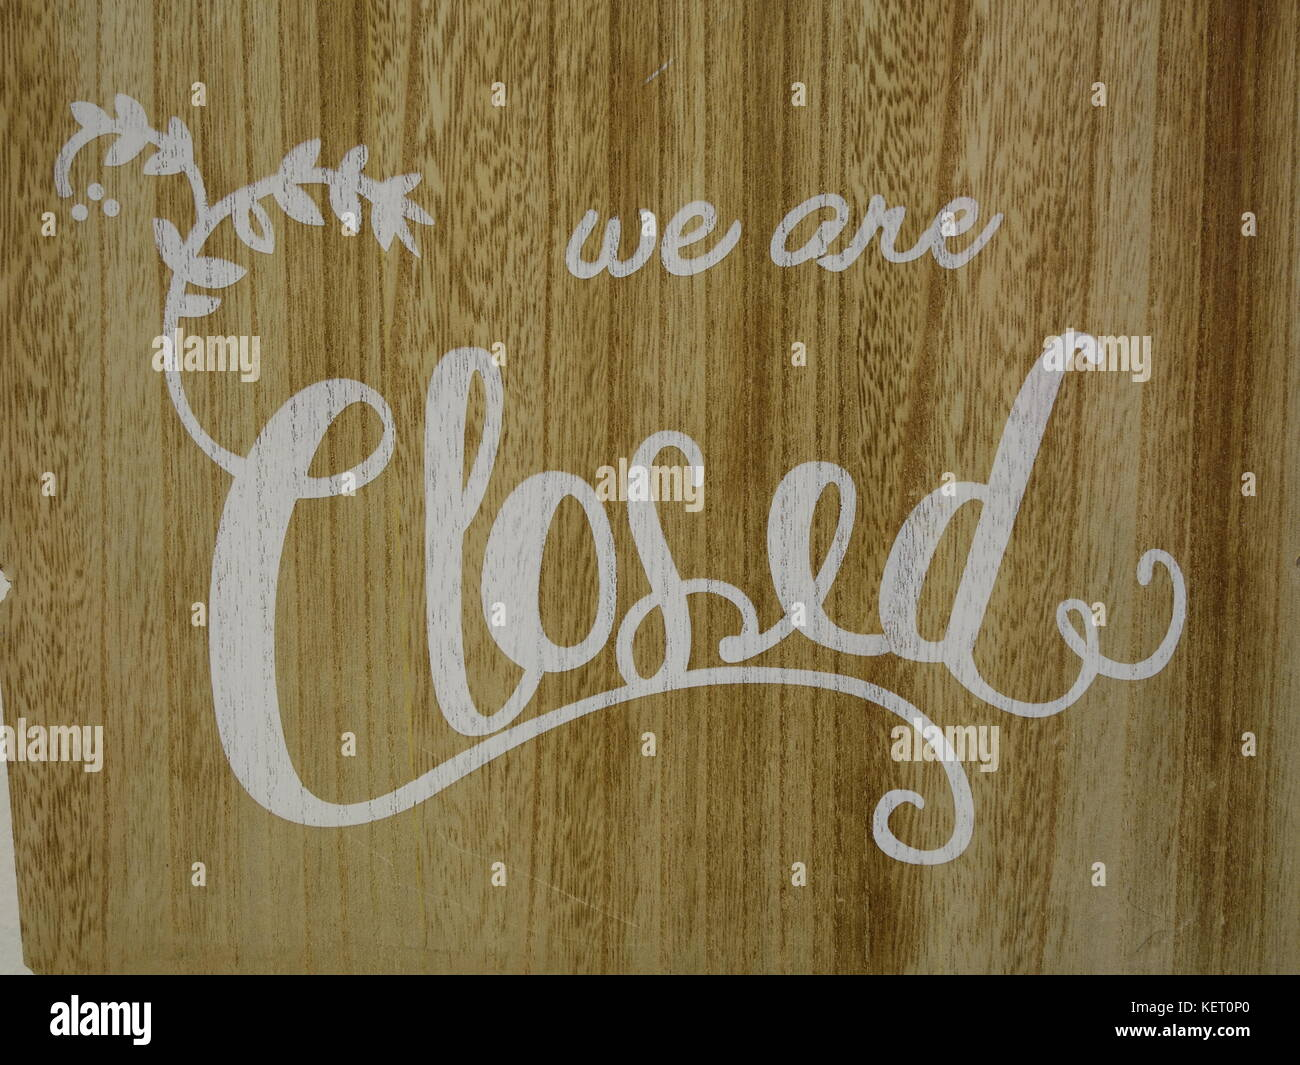 we are closed sign - Stock Image